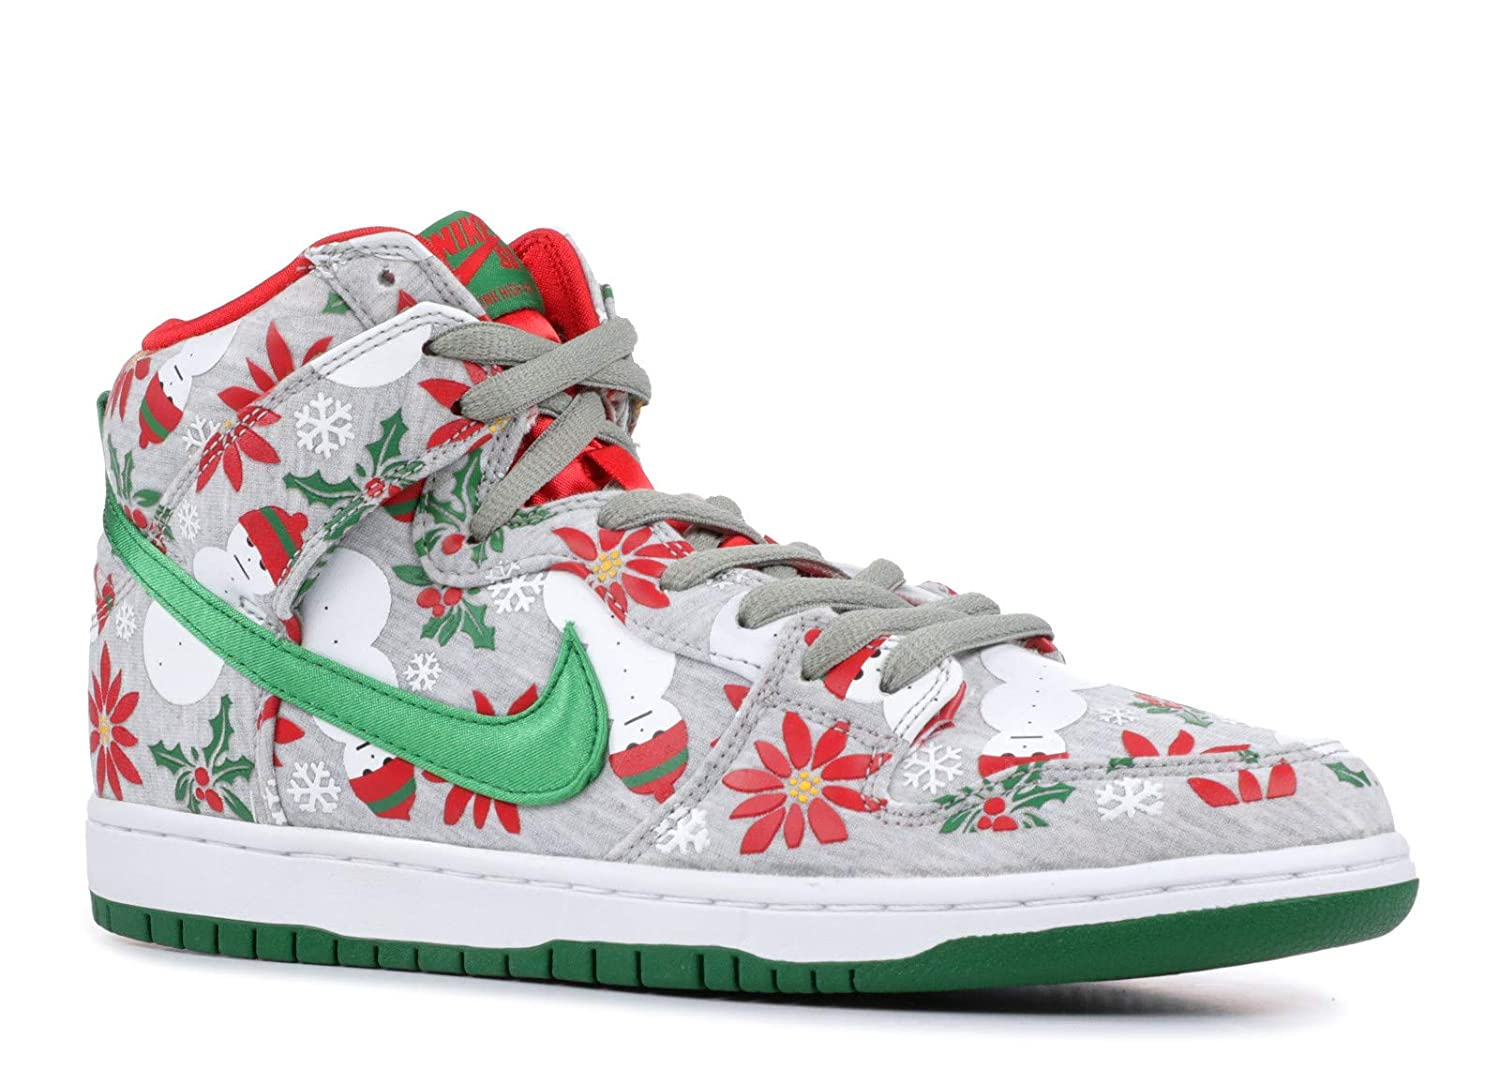 buy online 48af0 42d6f Amazon.com | Nike Dunk High SB PRM Ugly Christmas Sweater (635525-036) |  Fashion Sneakers